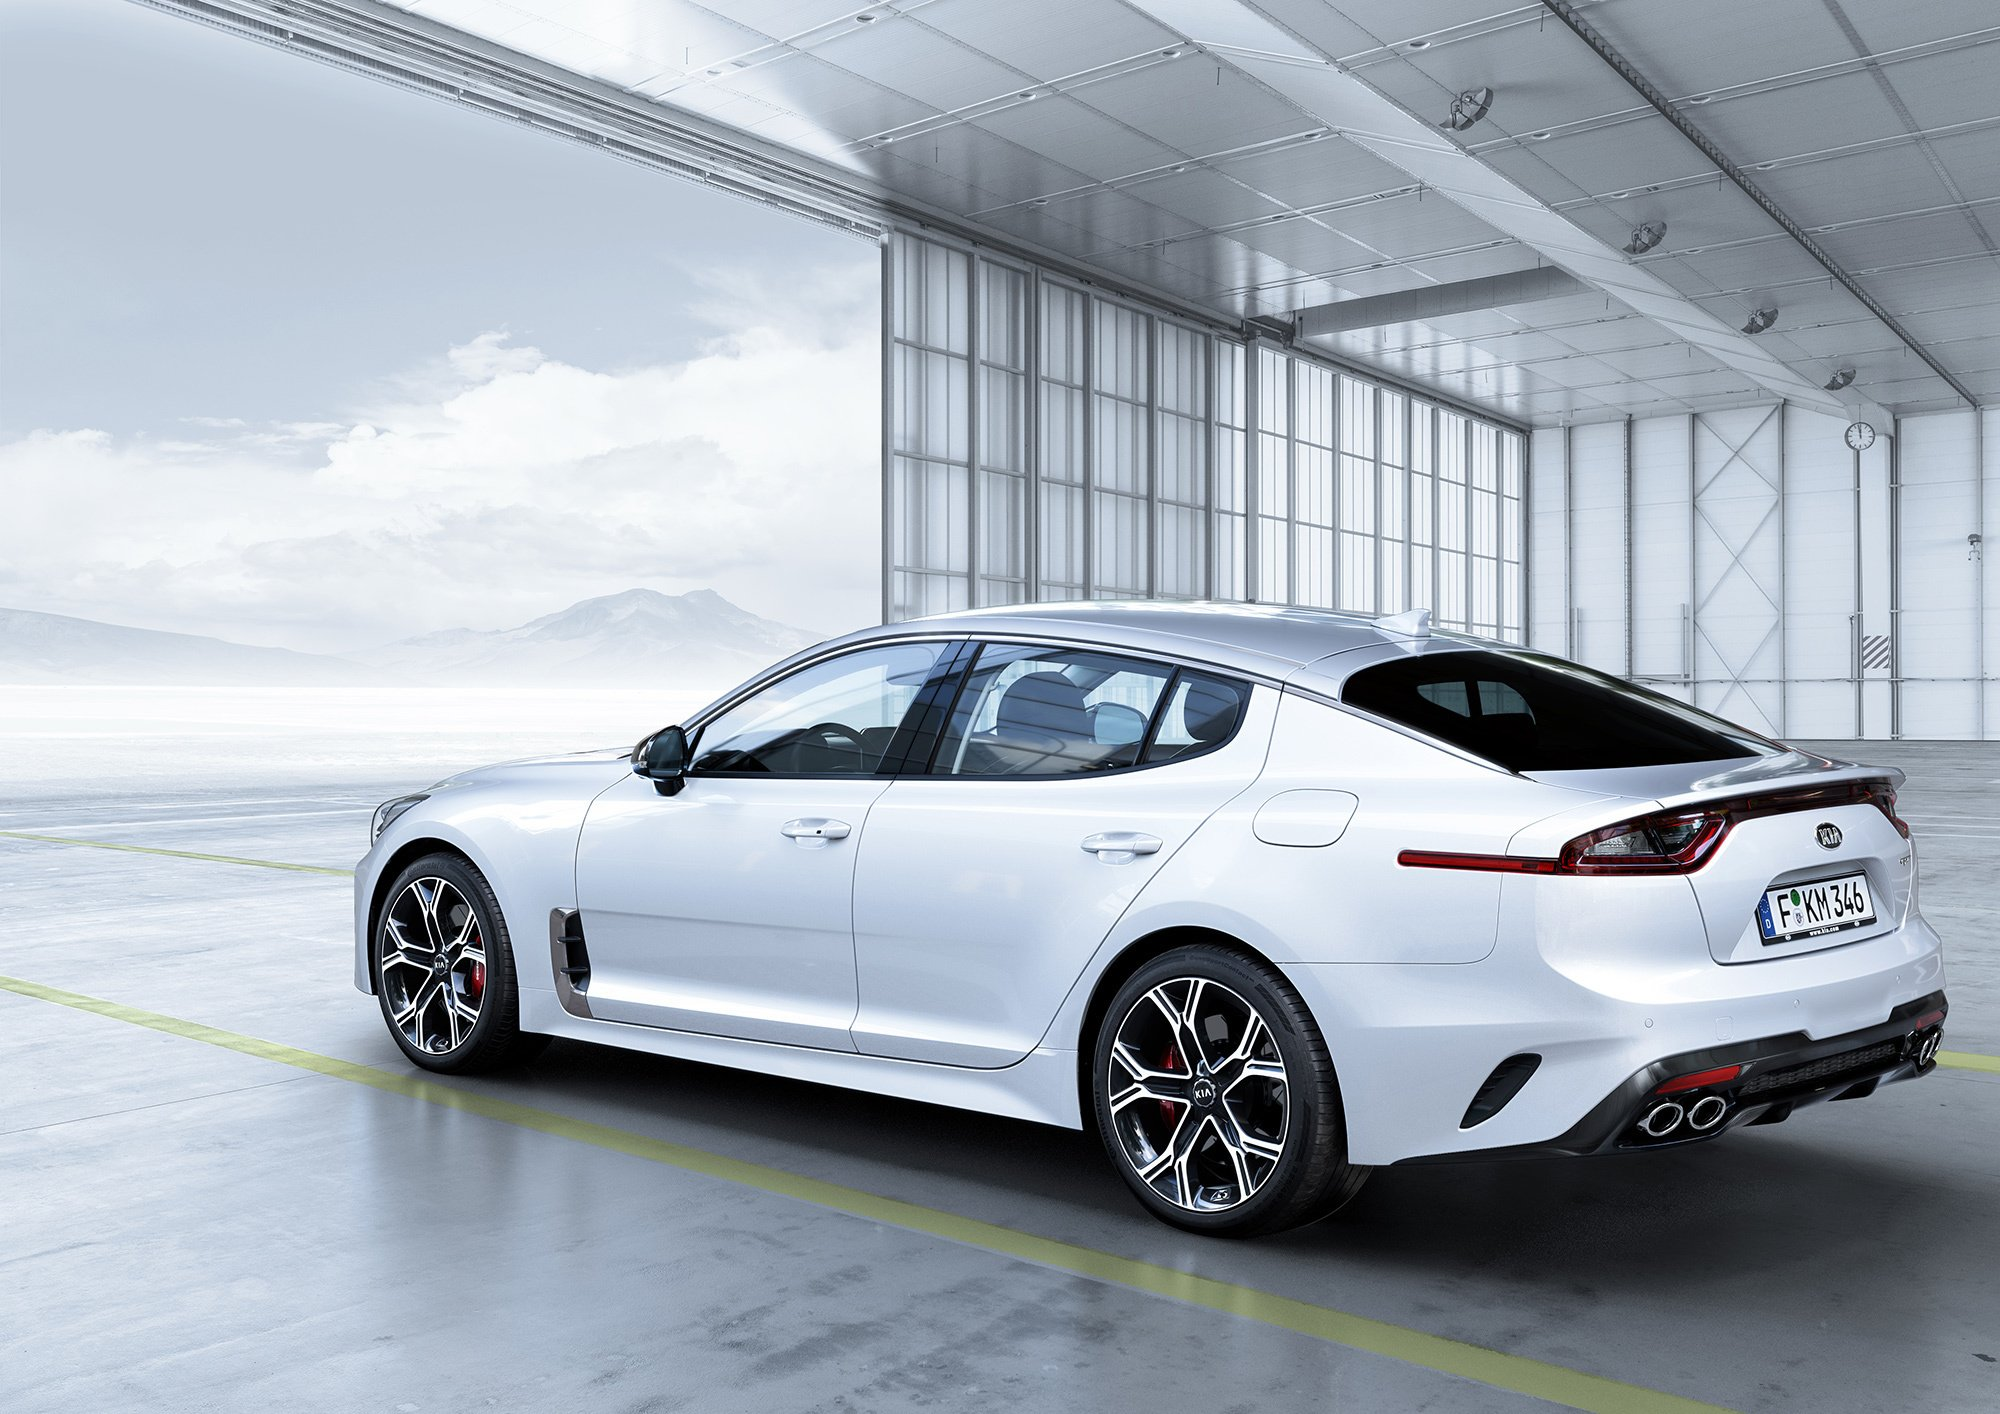 Kia Stinger Wallpapers And Backgrounds 2000x1414